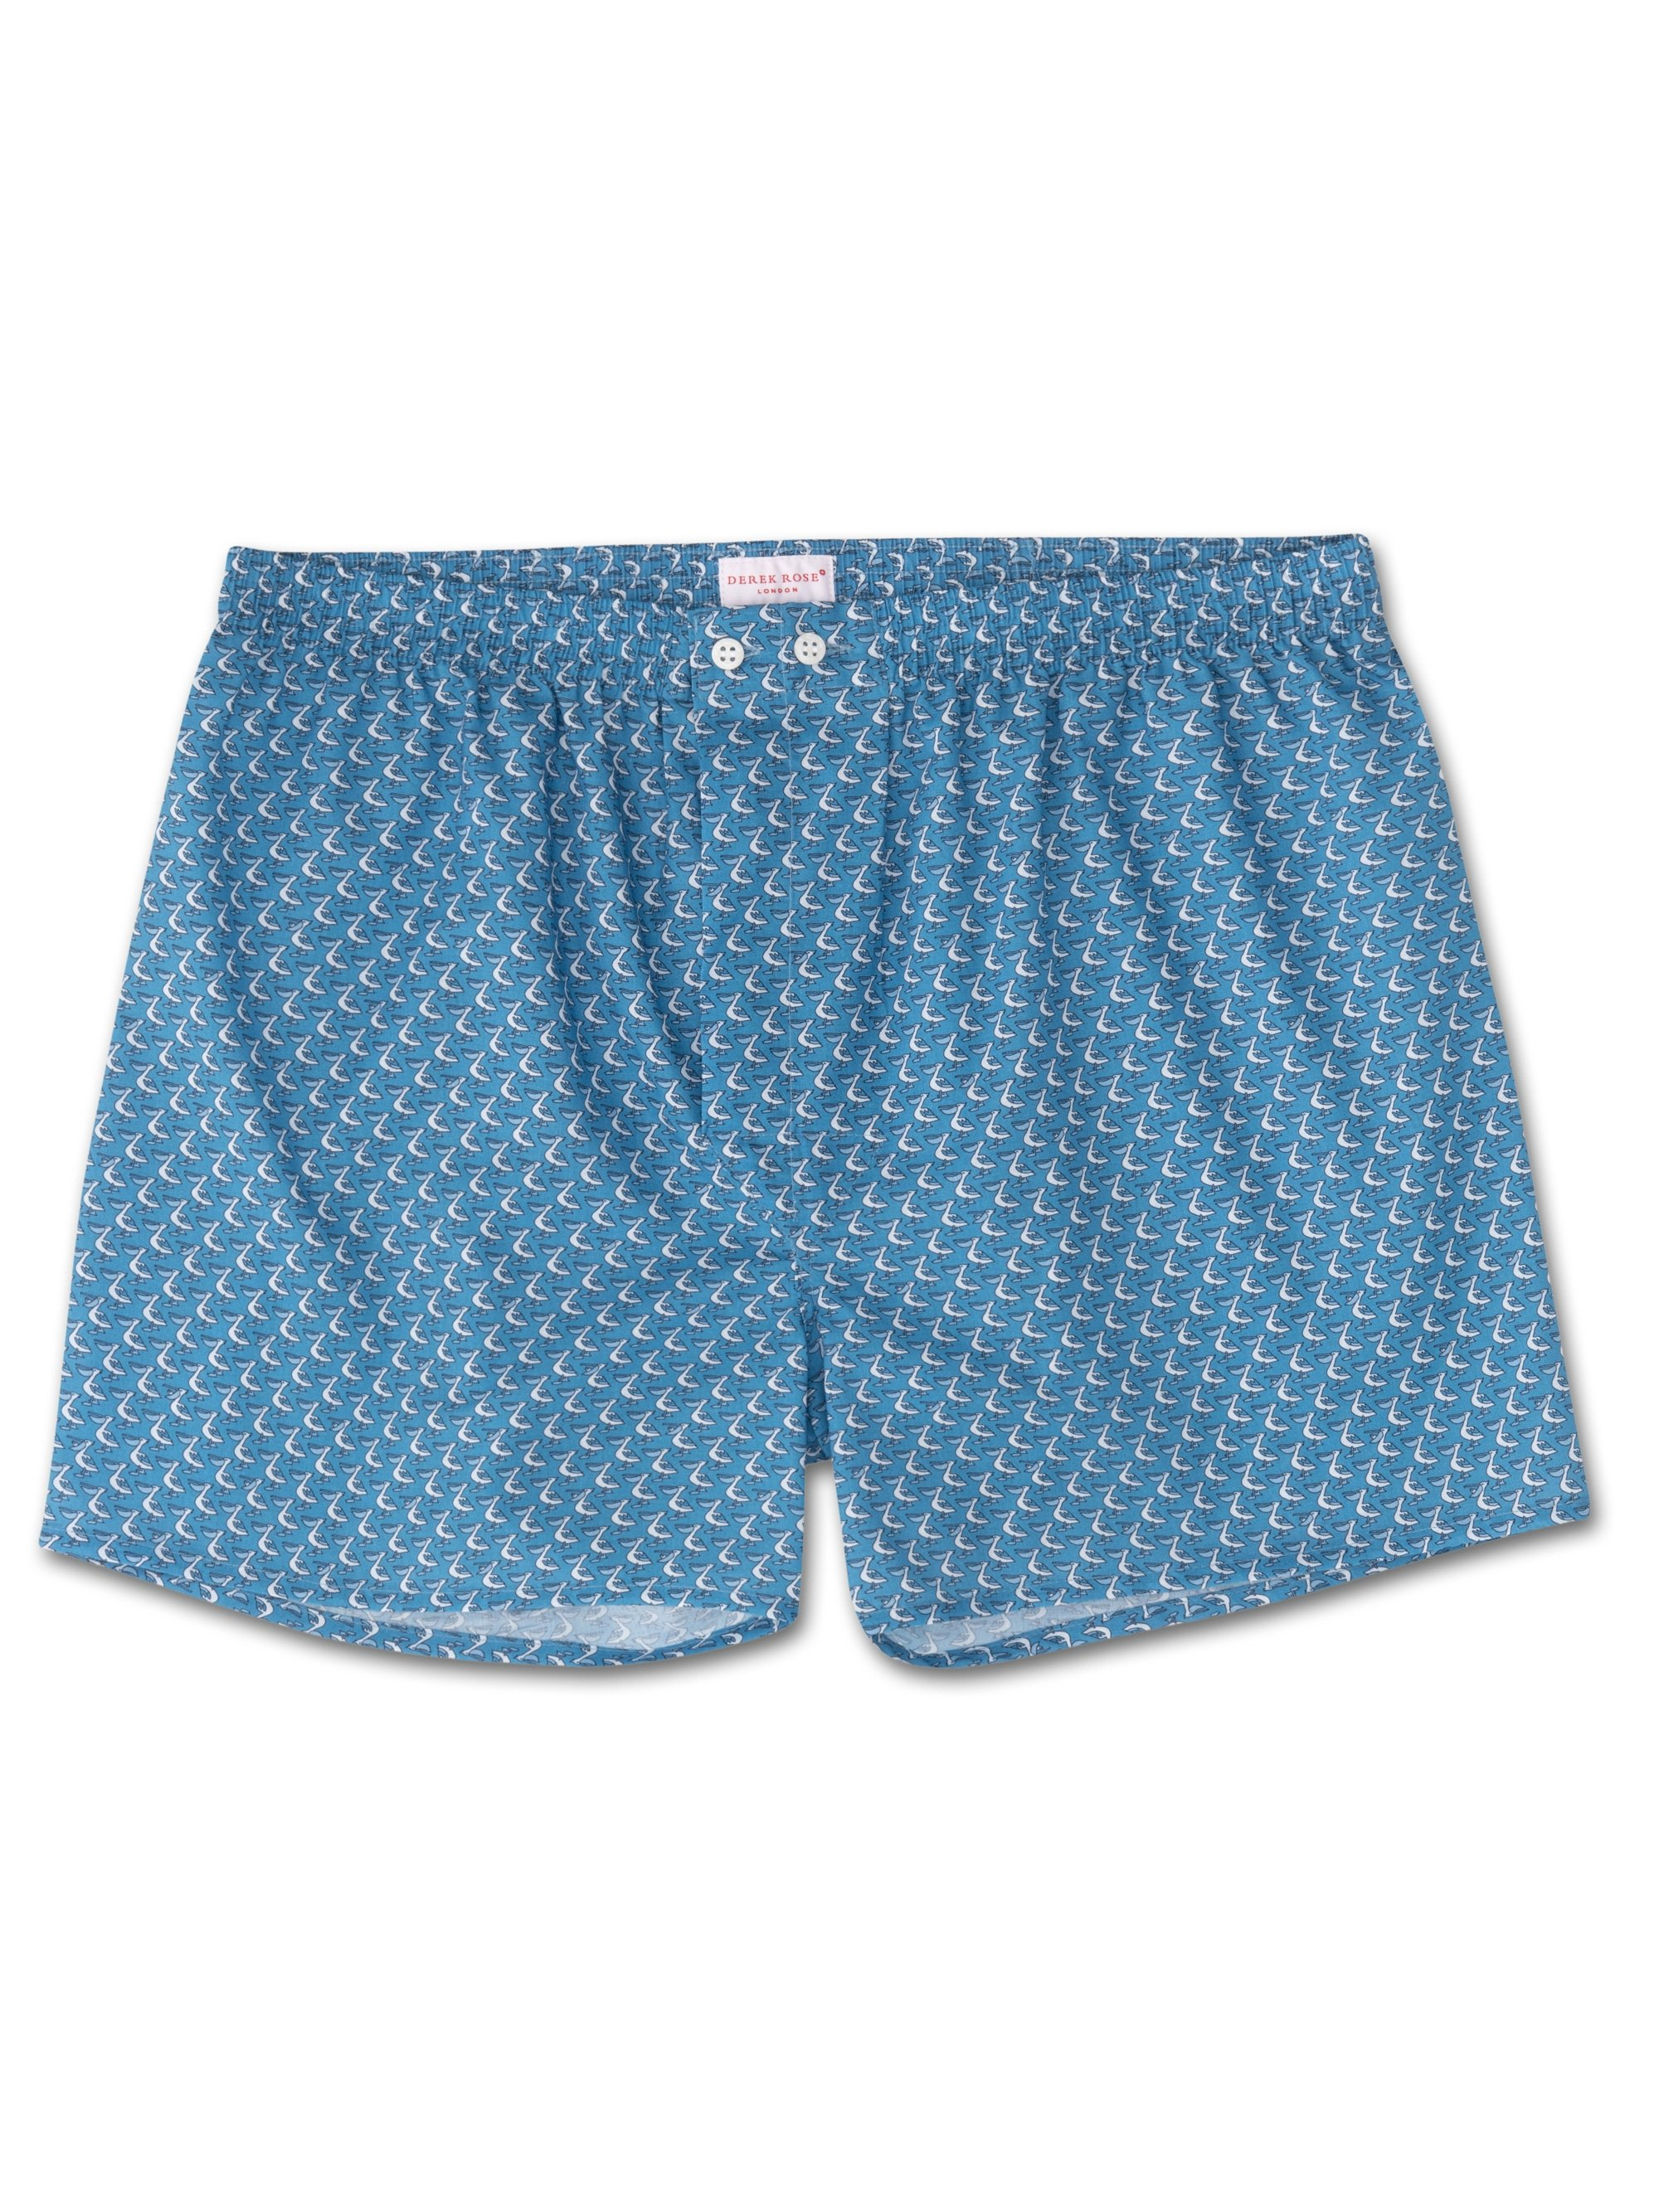 Men's Classic Fit Boxer Shorts Ledbury 16 Cotton Batiste Blue